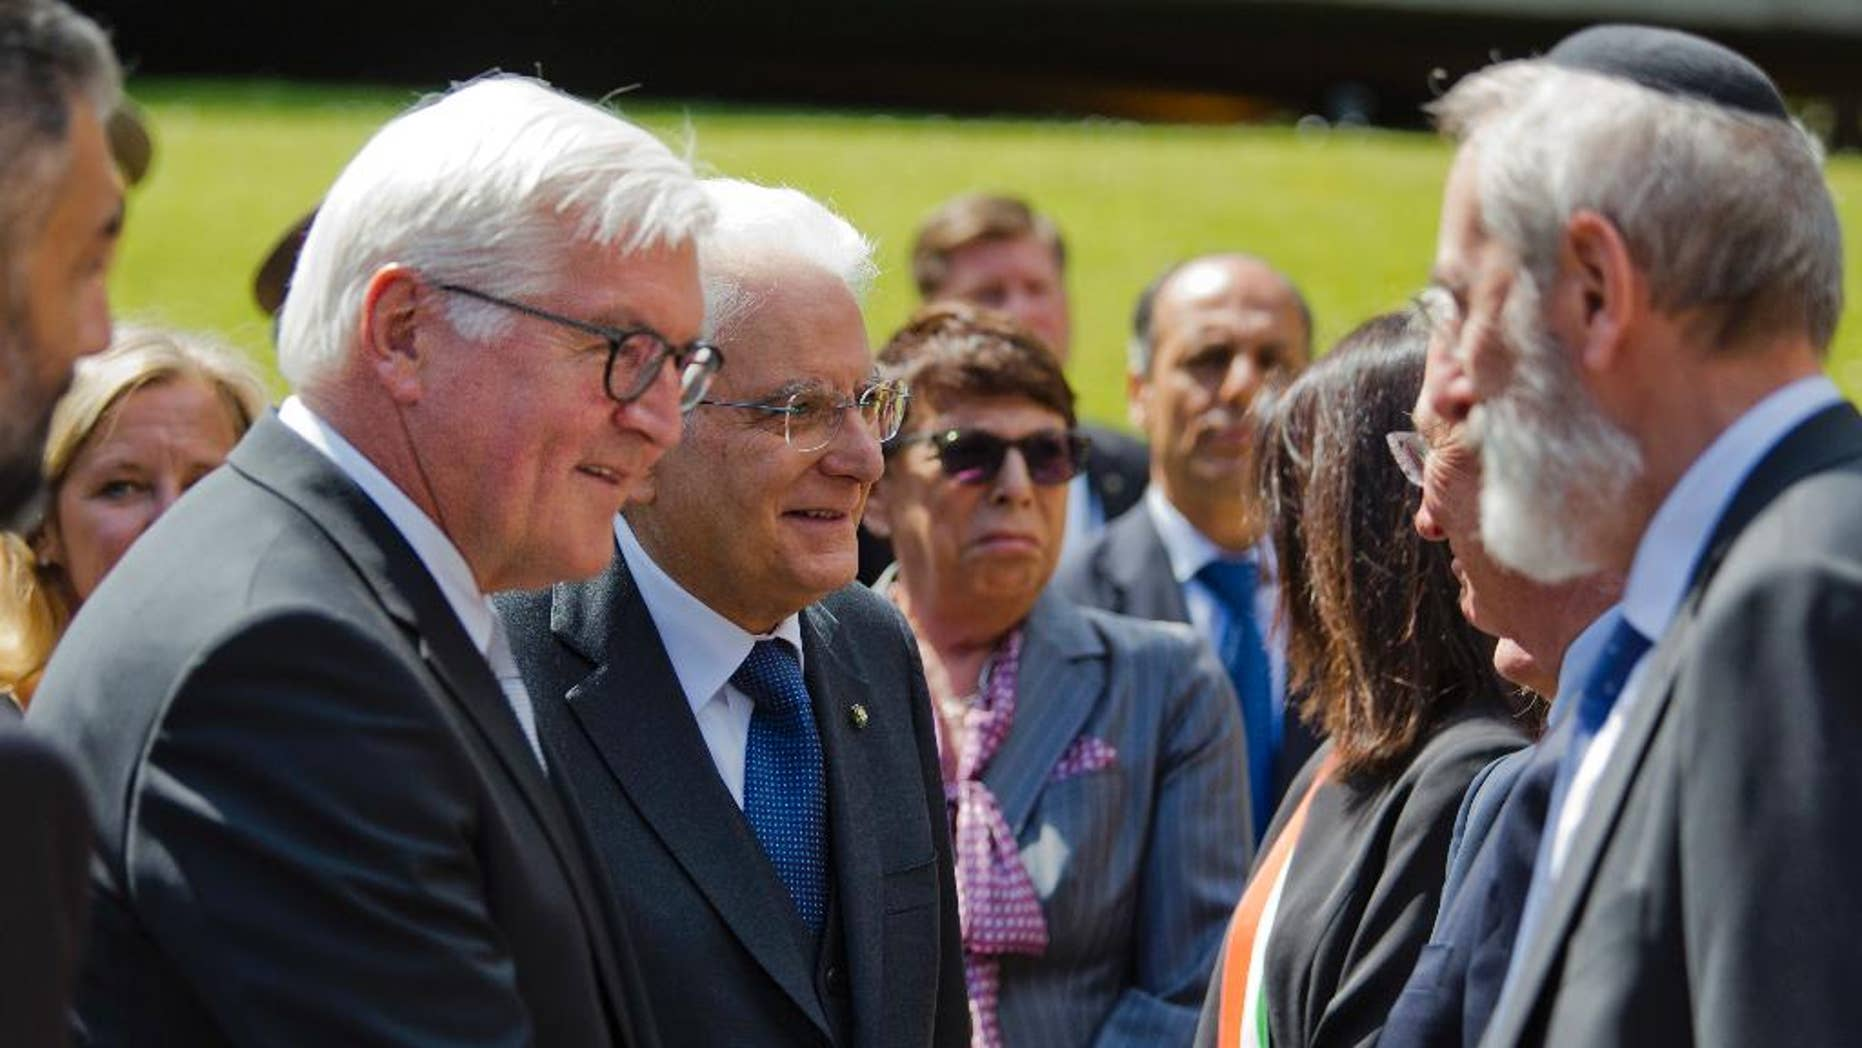 German President Frank-Walter Steinmeier, left, flanked by his Italian counterpart Sergio Mattarella, shakes hands with Rome's Chief Rabbi Riccardo Di Segni during a visit to the Fosse Ardeatine Memorial Cemetery in Rome, built on the site of a mass killing of 365 civilians during World War II by the occupying Nazis as a reprisal for a partisan attack the previous day, Wednesday, May 3, 2017. (AP Photo/Domenico Stinellis)